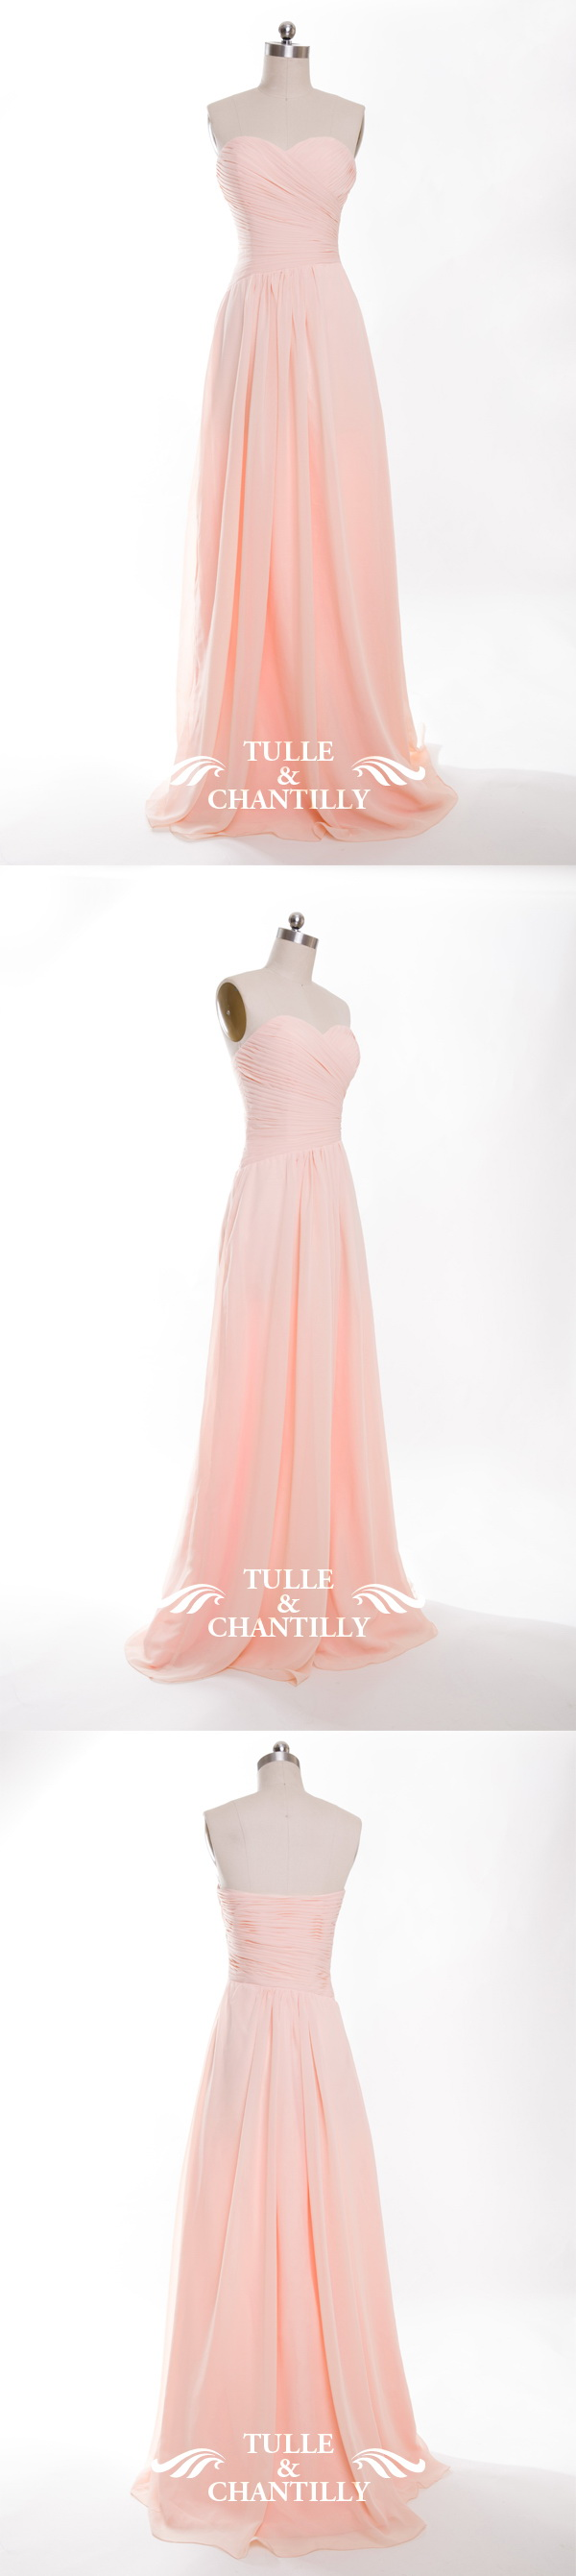 rose chiffon long bridesmaid dresses for spring summer weddings ...